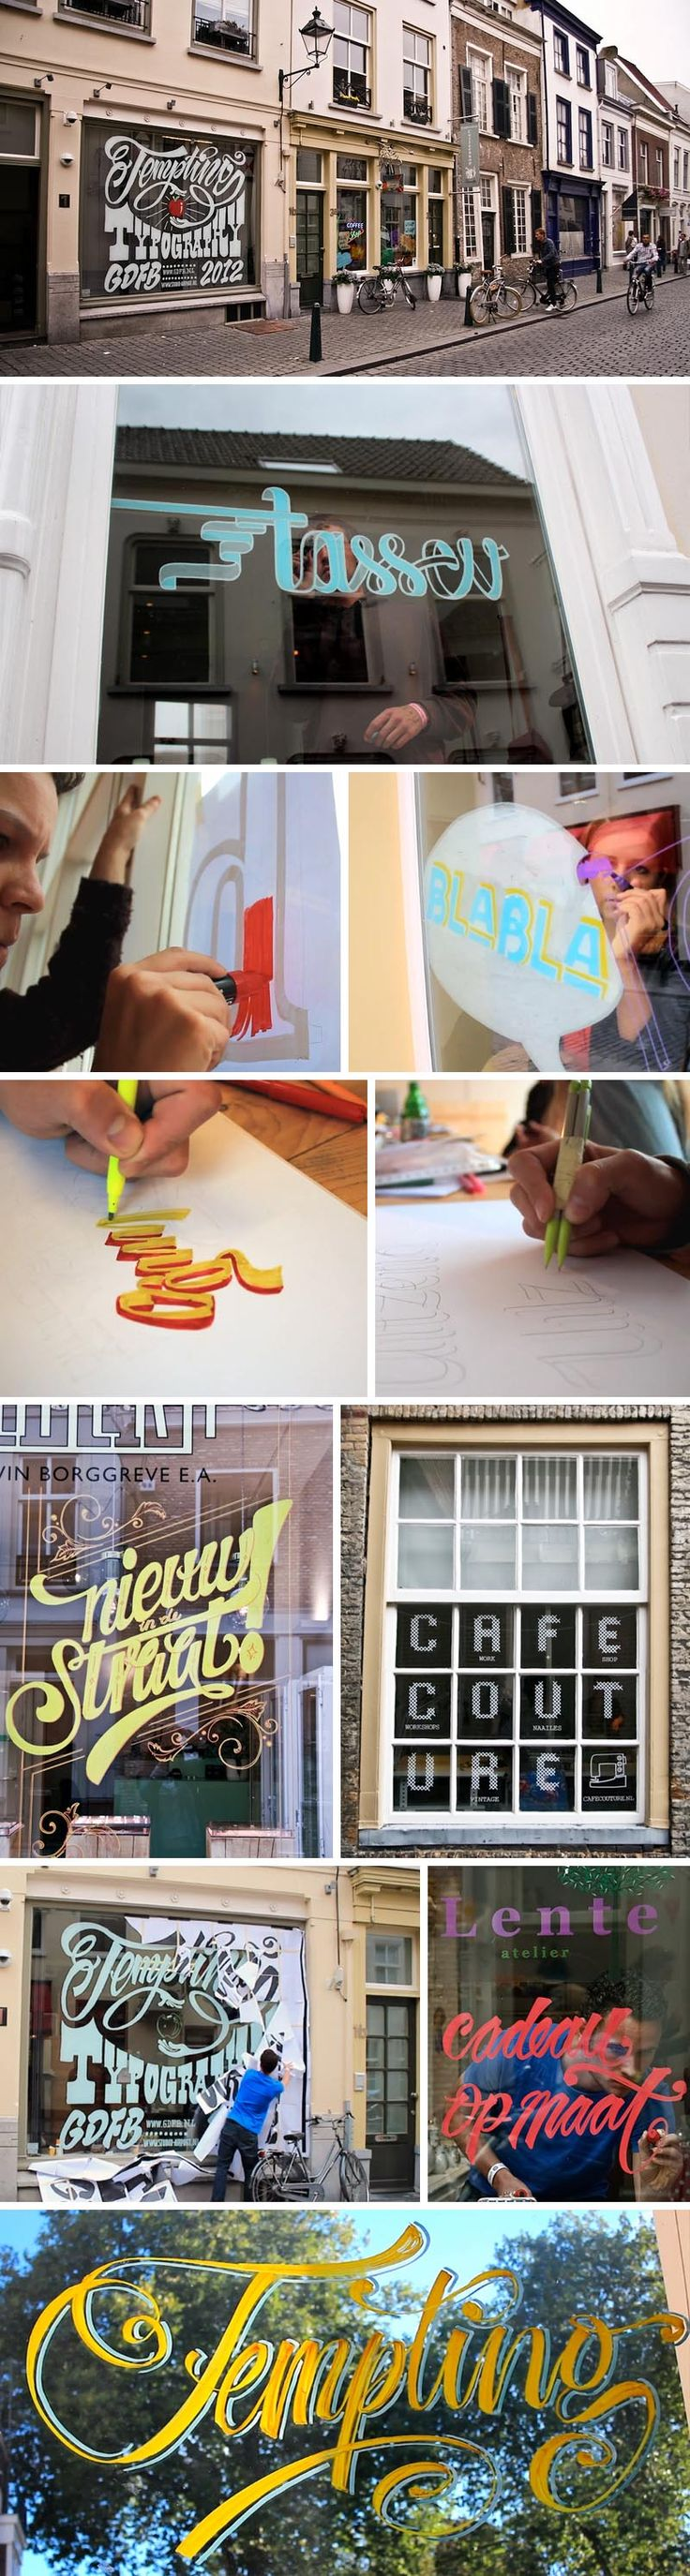 Here's a nice event that took place during the Graphic Design Festival in Breda, Netherlands. Design firm Studio AIRPORT held a three-day-long workshop called Tempting Typography based on window-typography.